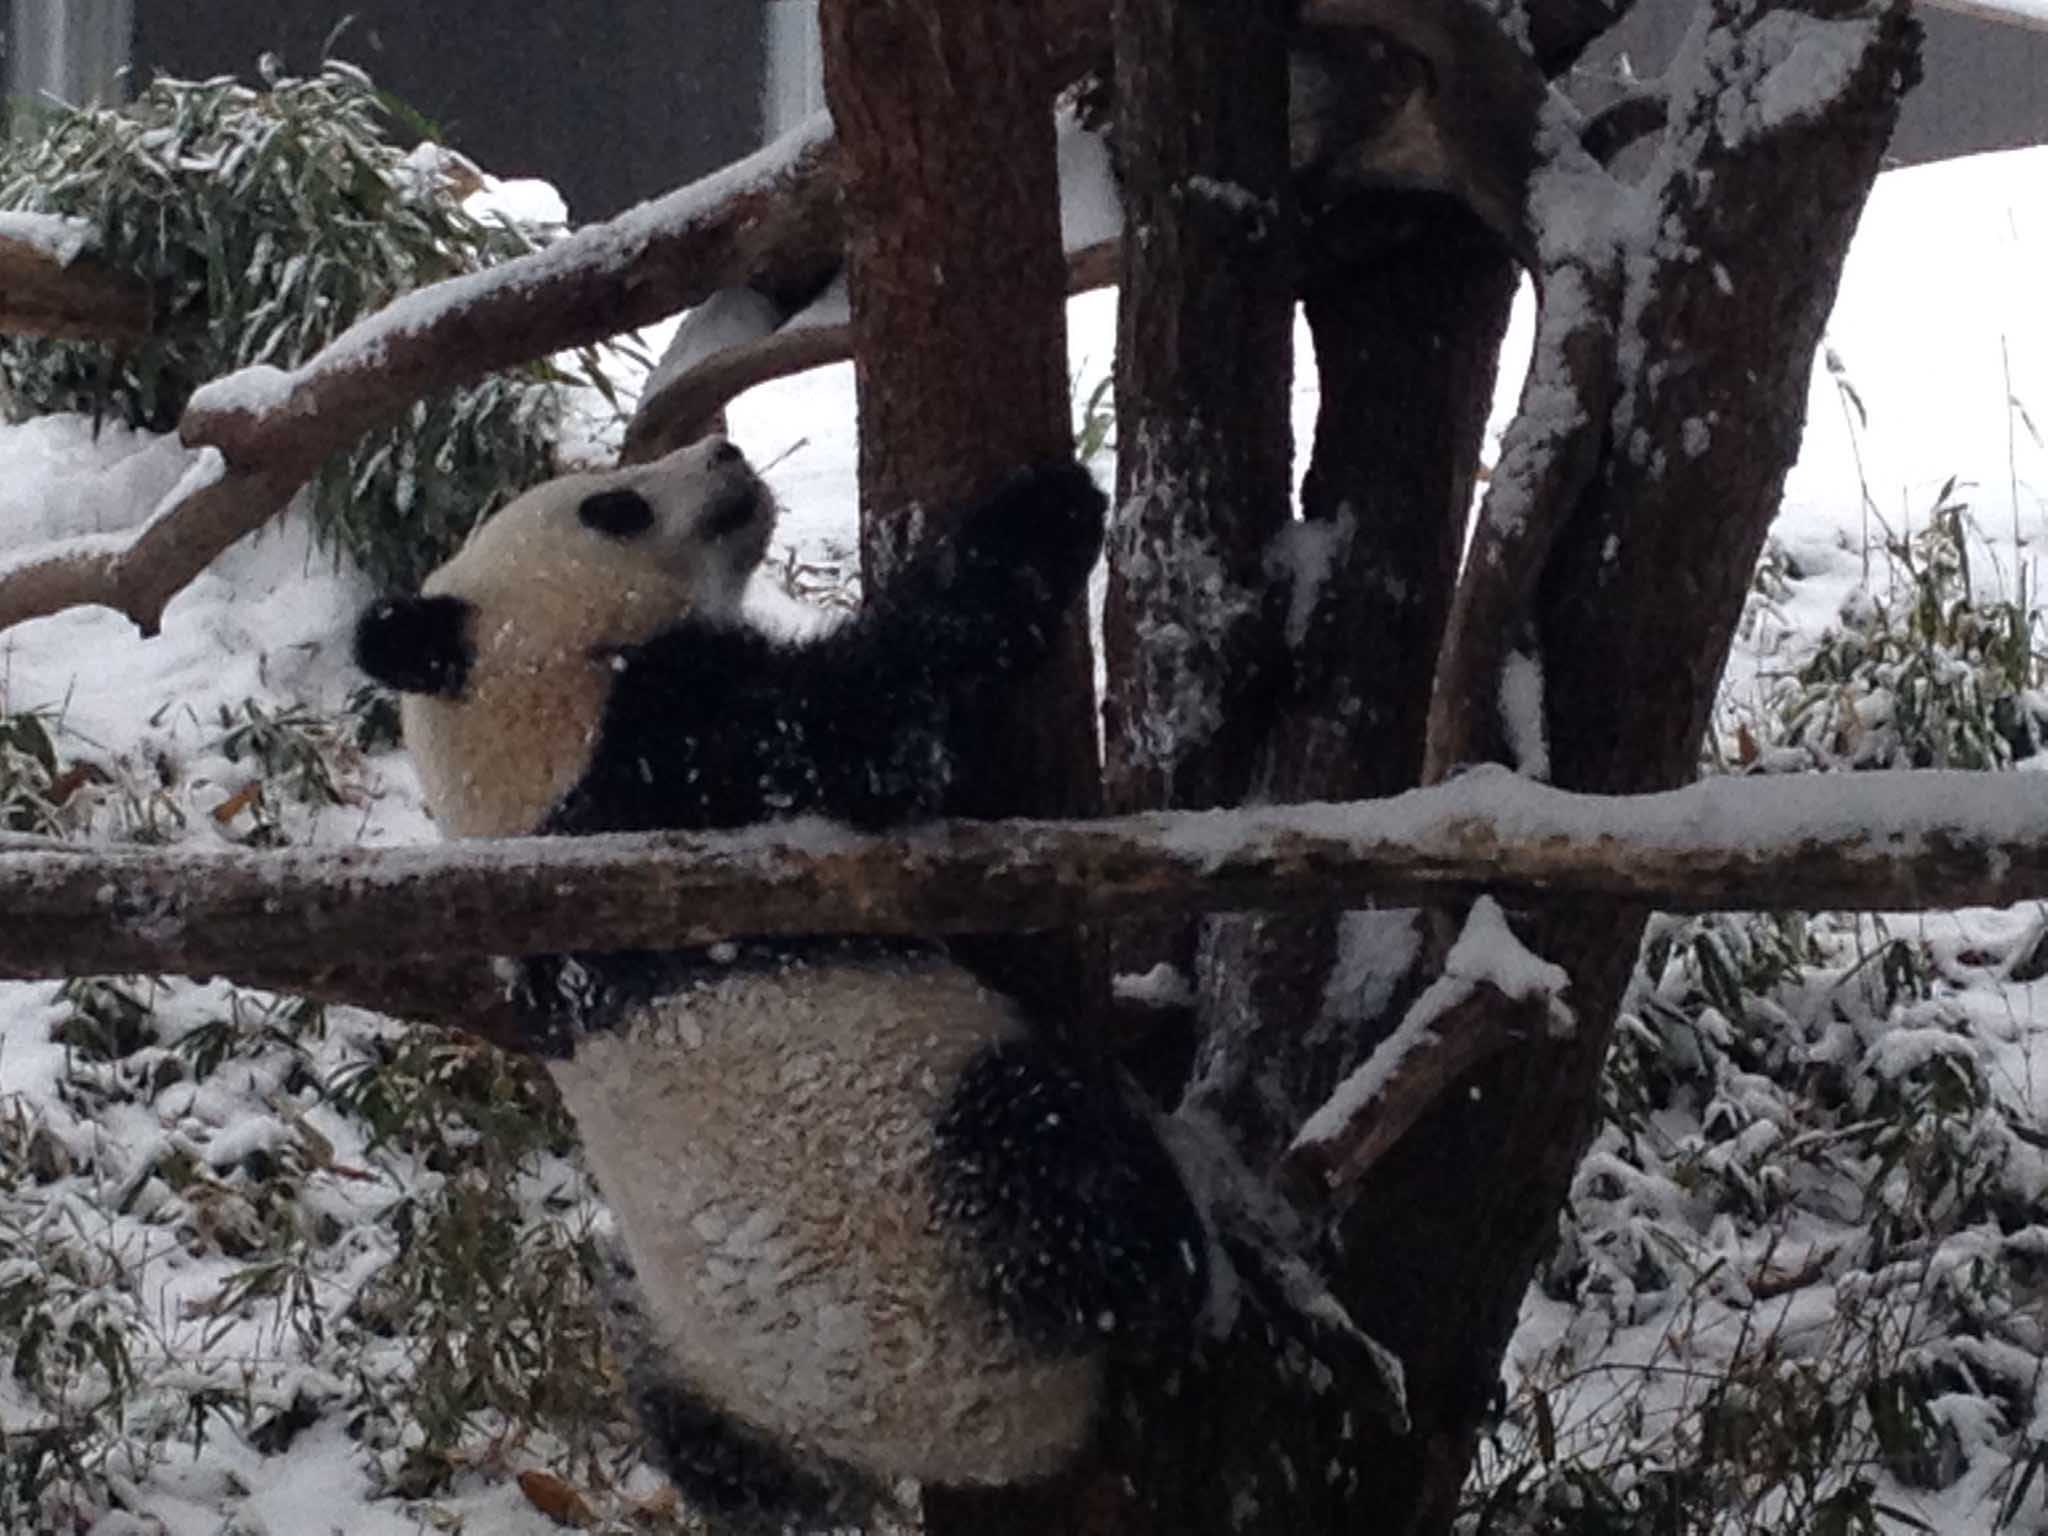 Bao Bao adjusts to ice, new home away from mom